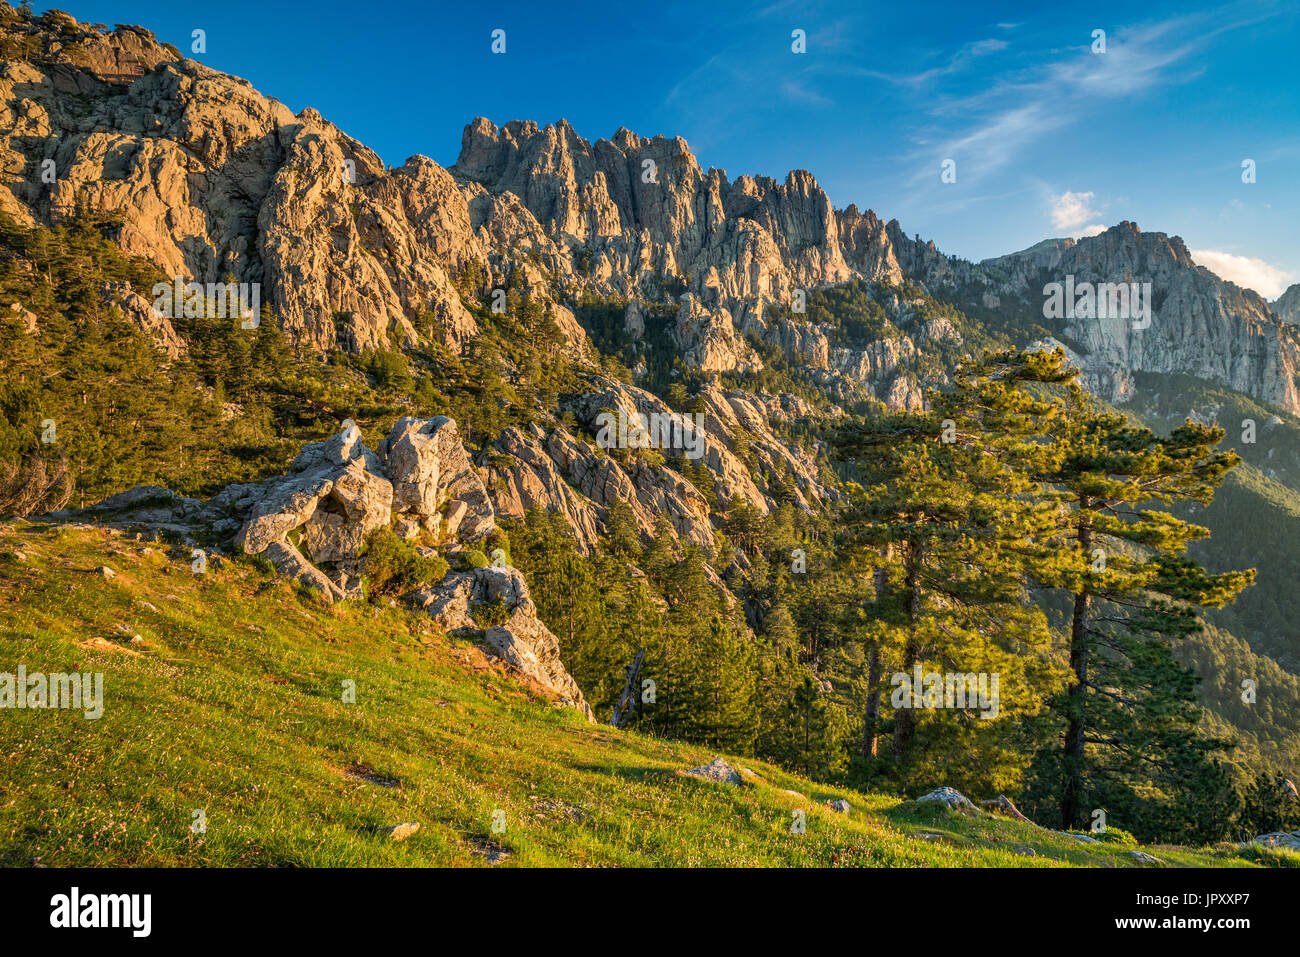 Aiguilles de Bavella, view at sunrise from Col de Bavella pass, Corse-du-Sud, Corsica, France - Stock Image